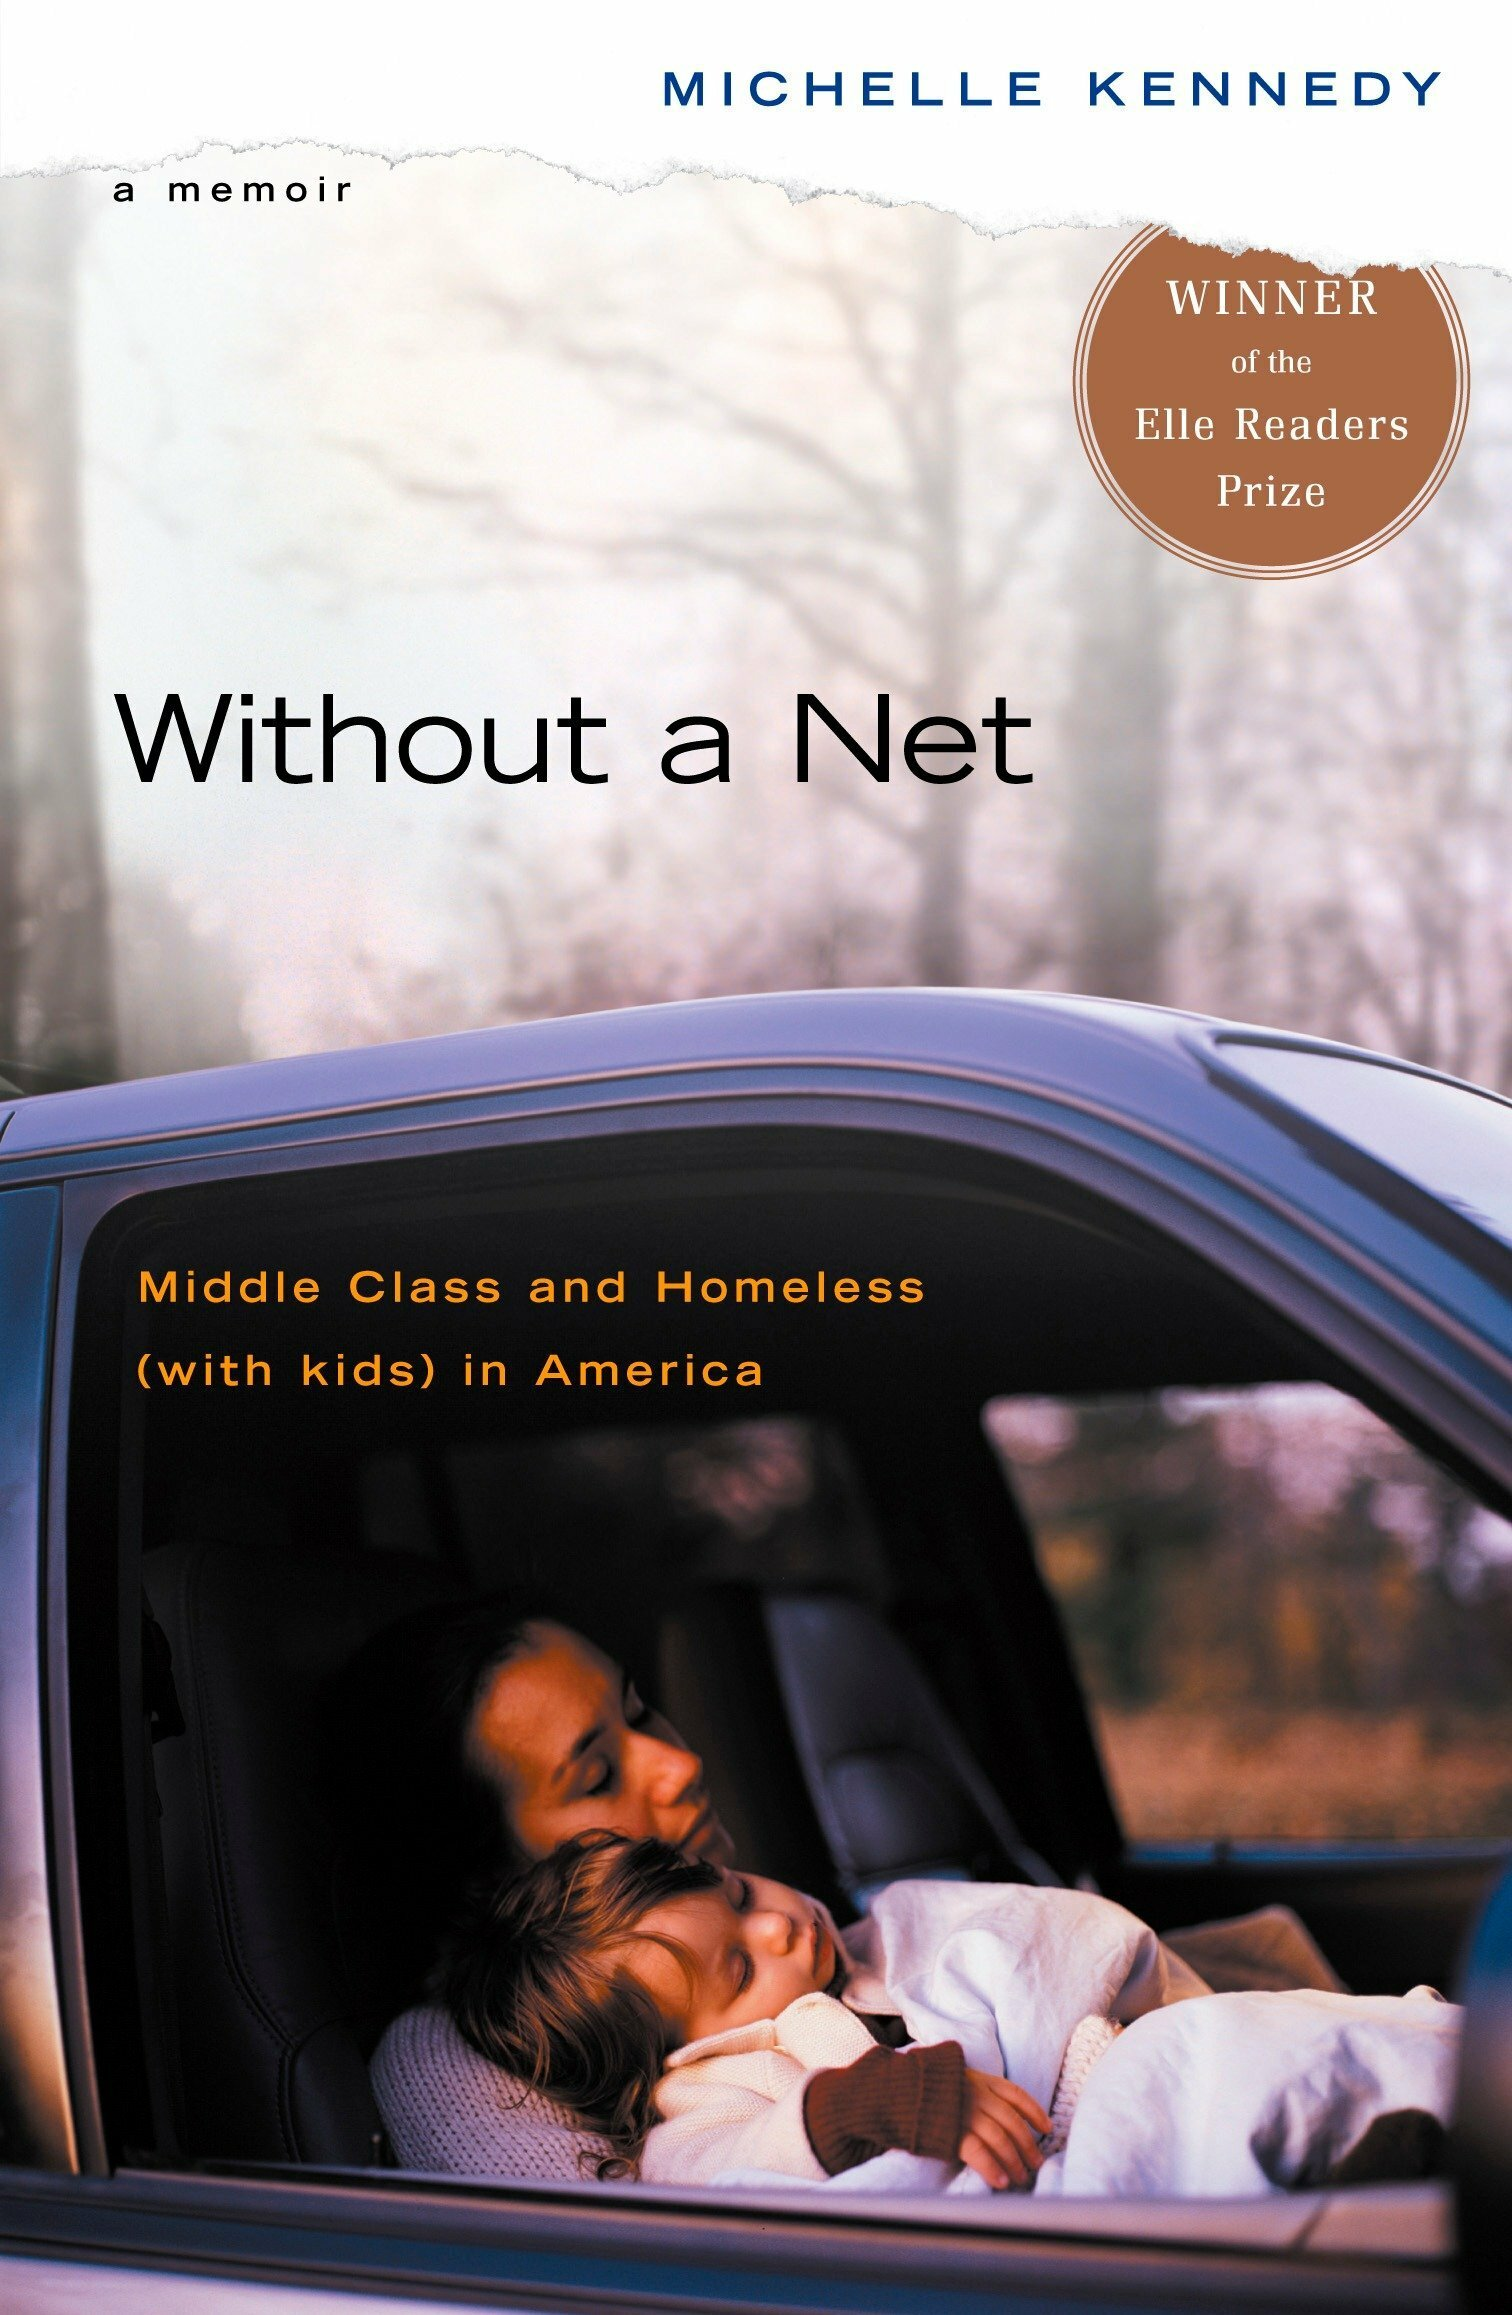 Without a net by Michelle Kennedy book